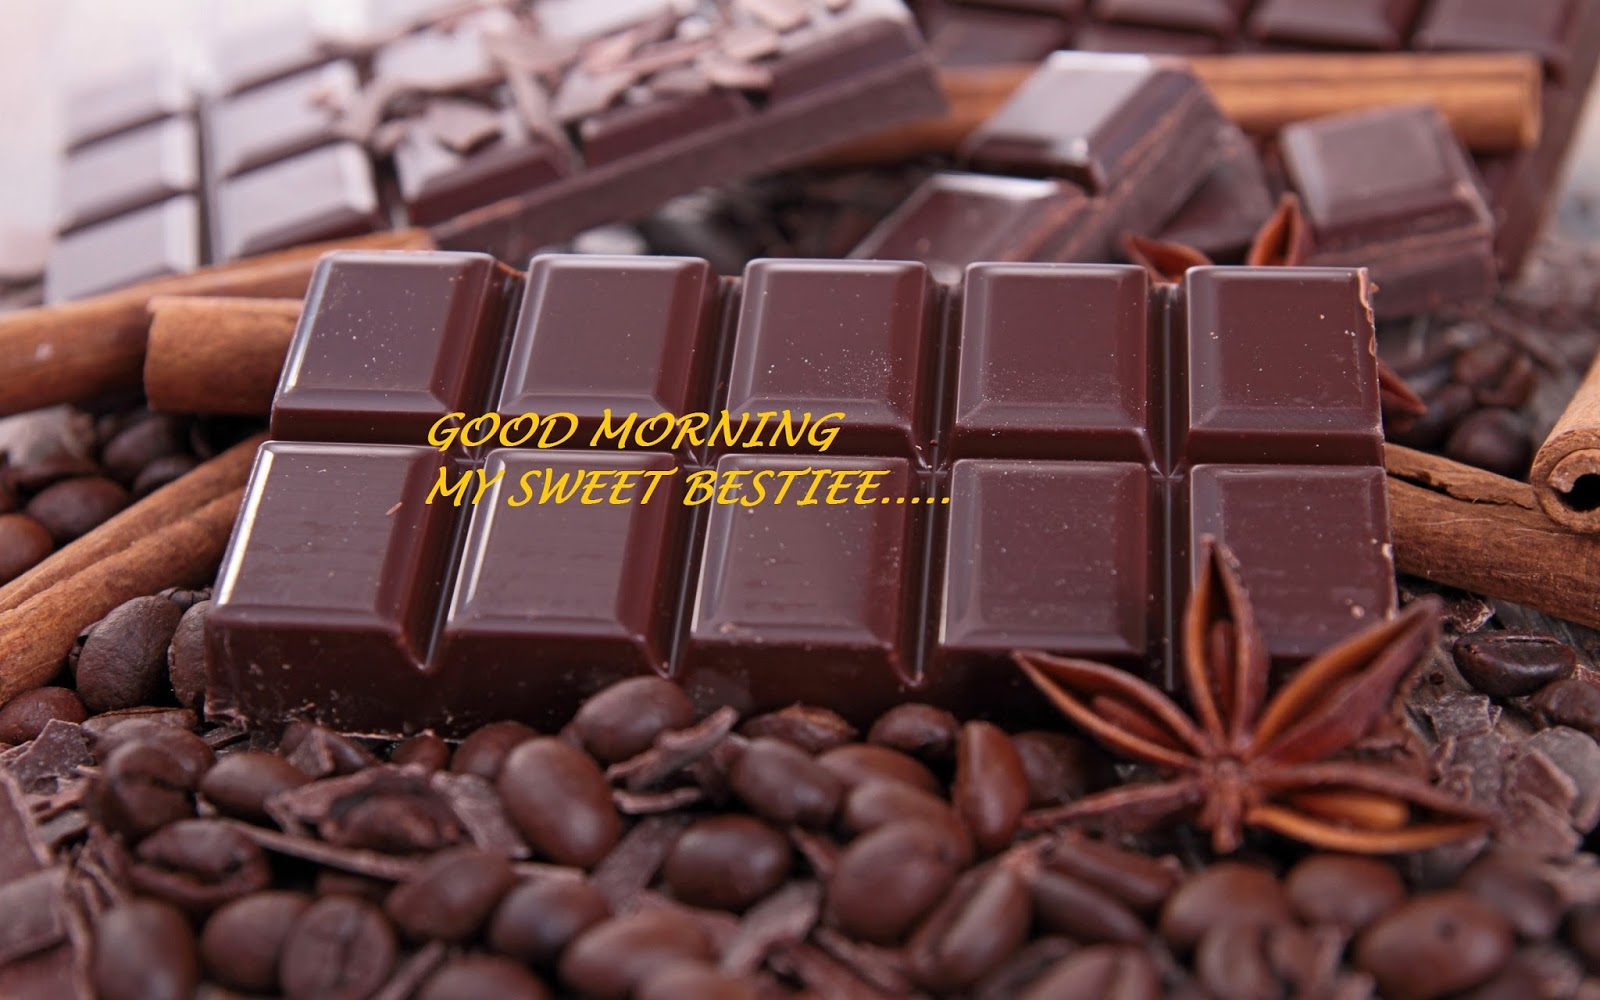 Chocolate good morning wishes in 2018